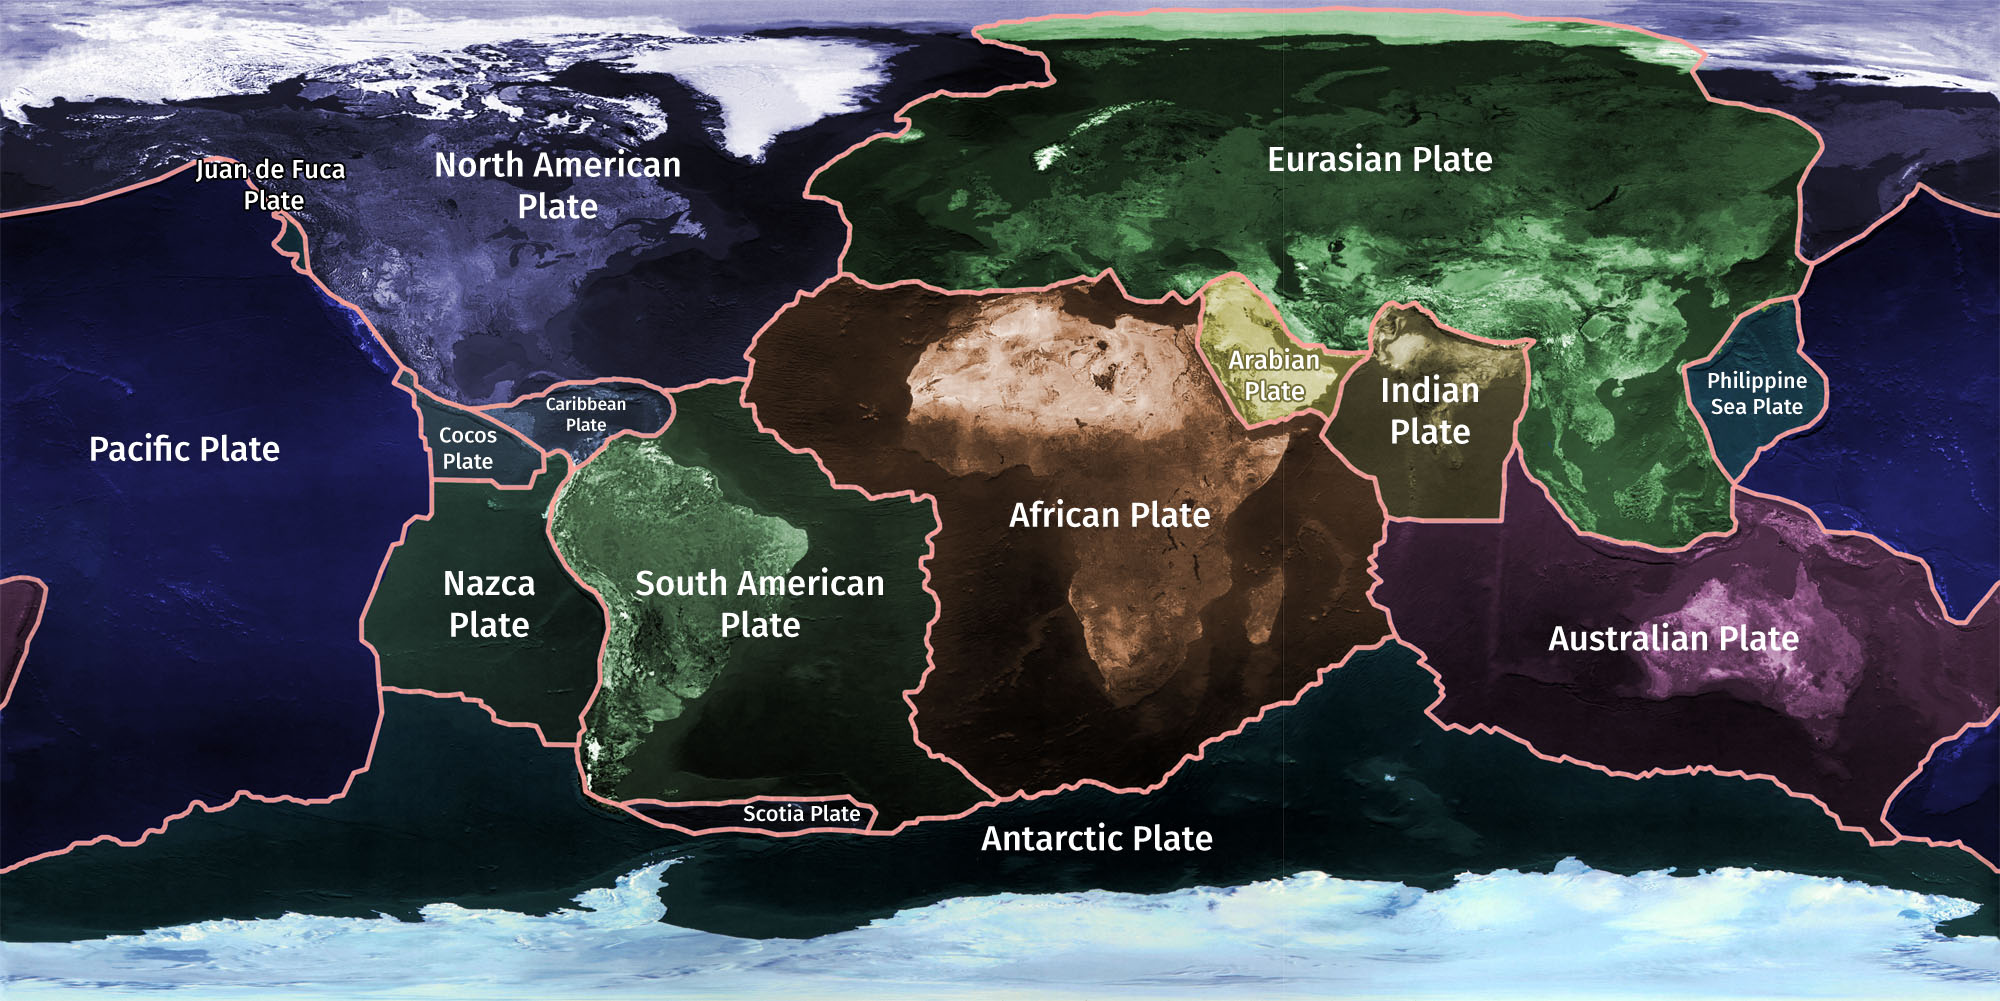 en66-how-plate-tectonics-is-connected-with-life-on-the-planet_02